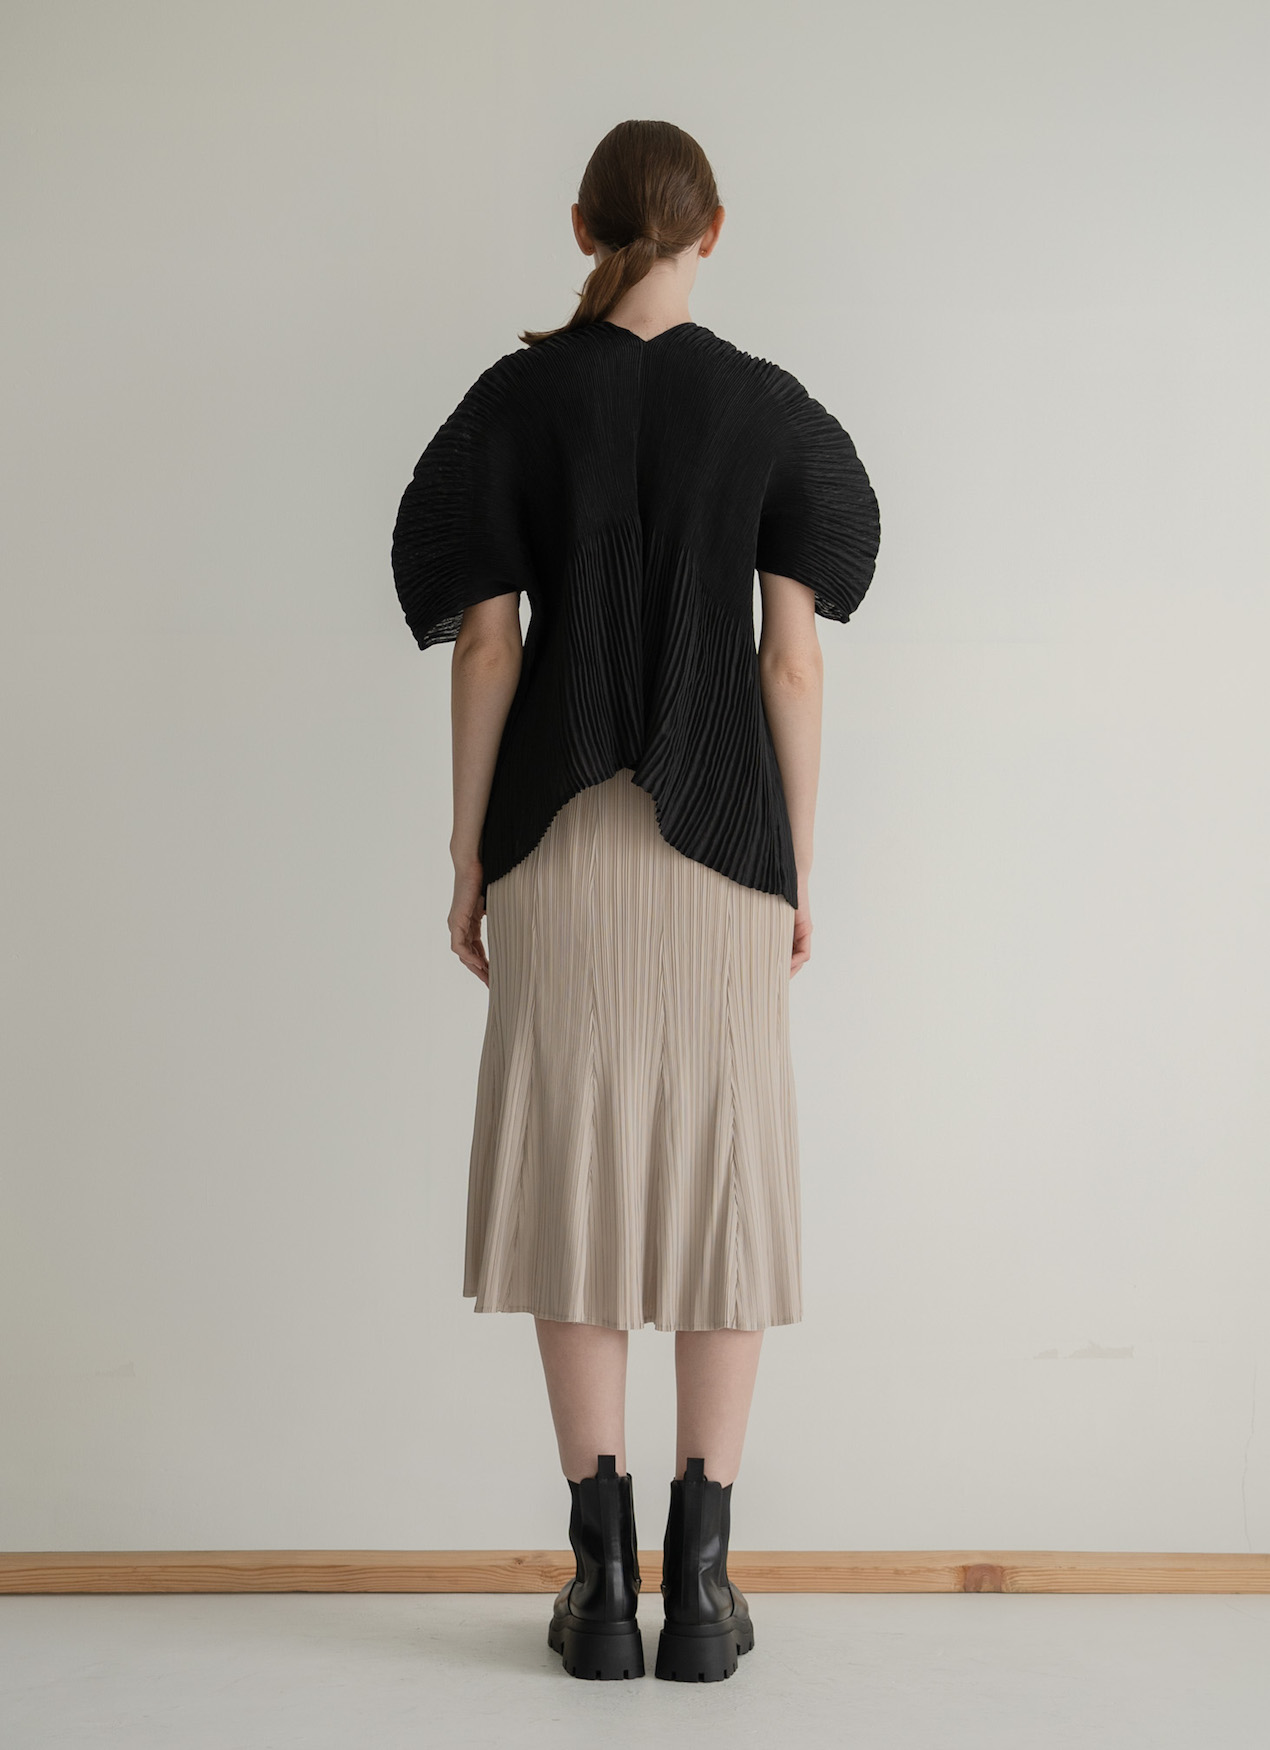 Orgeo Official Jules Top - Black